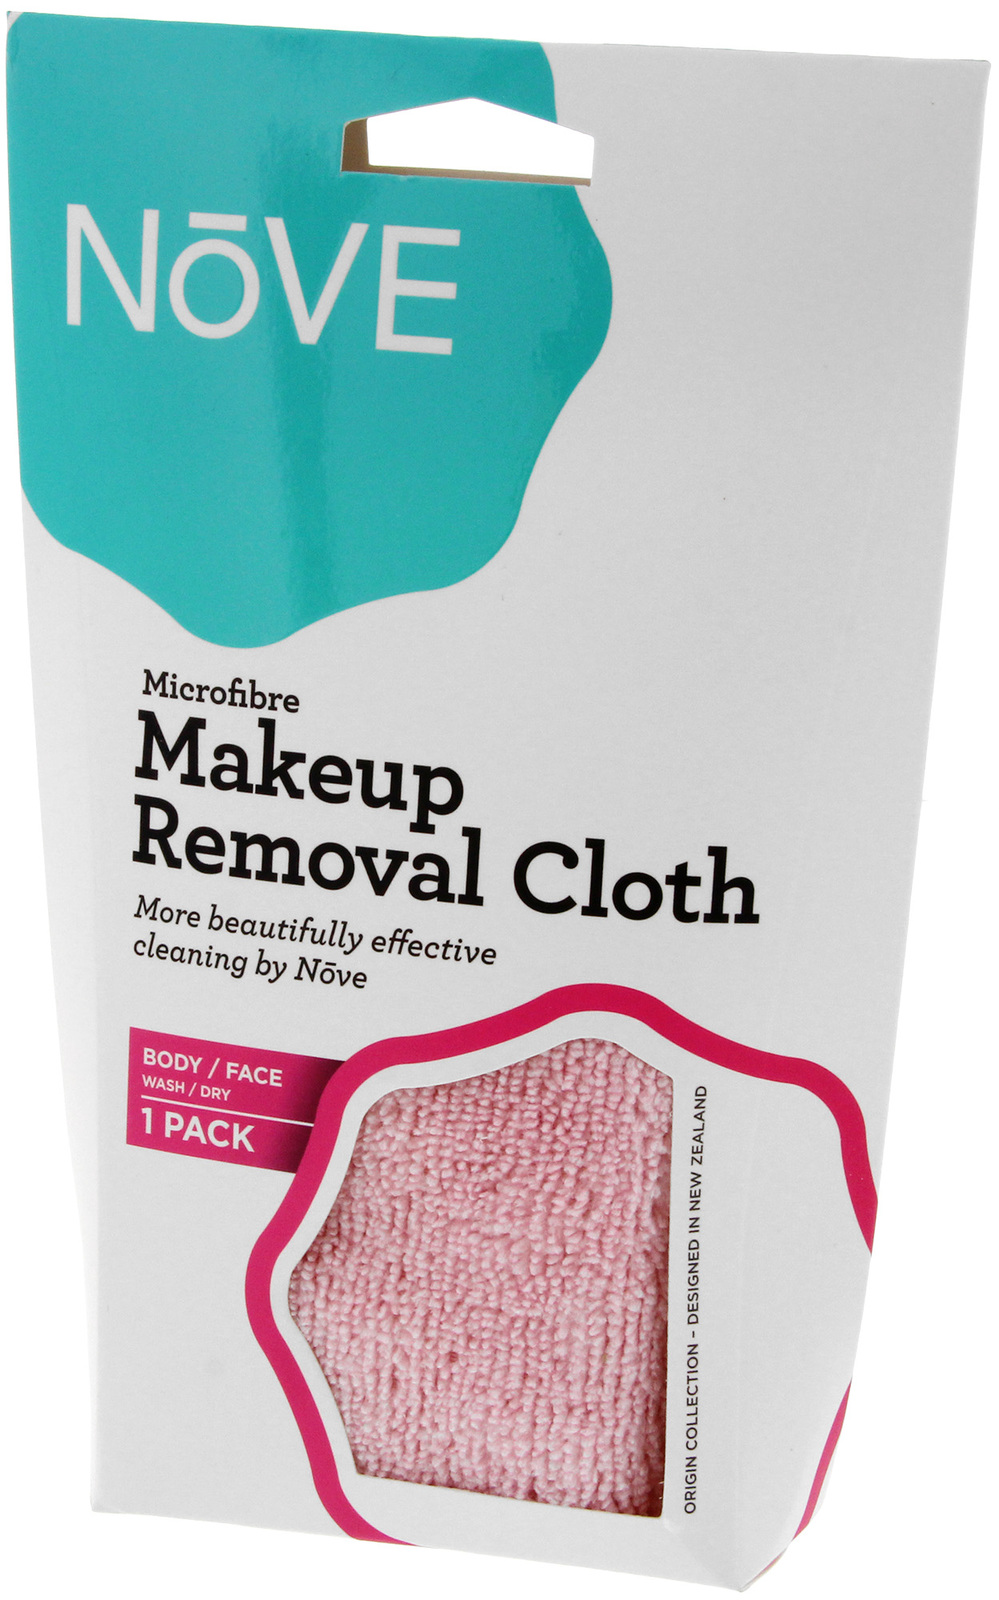 Nove Make Up Removal Cloth image